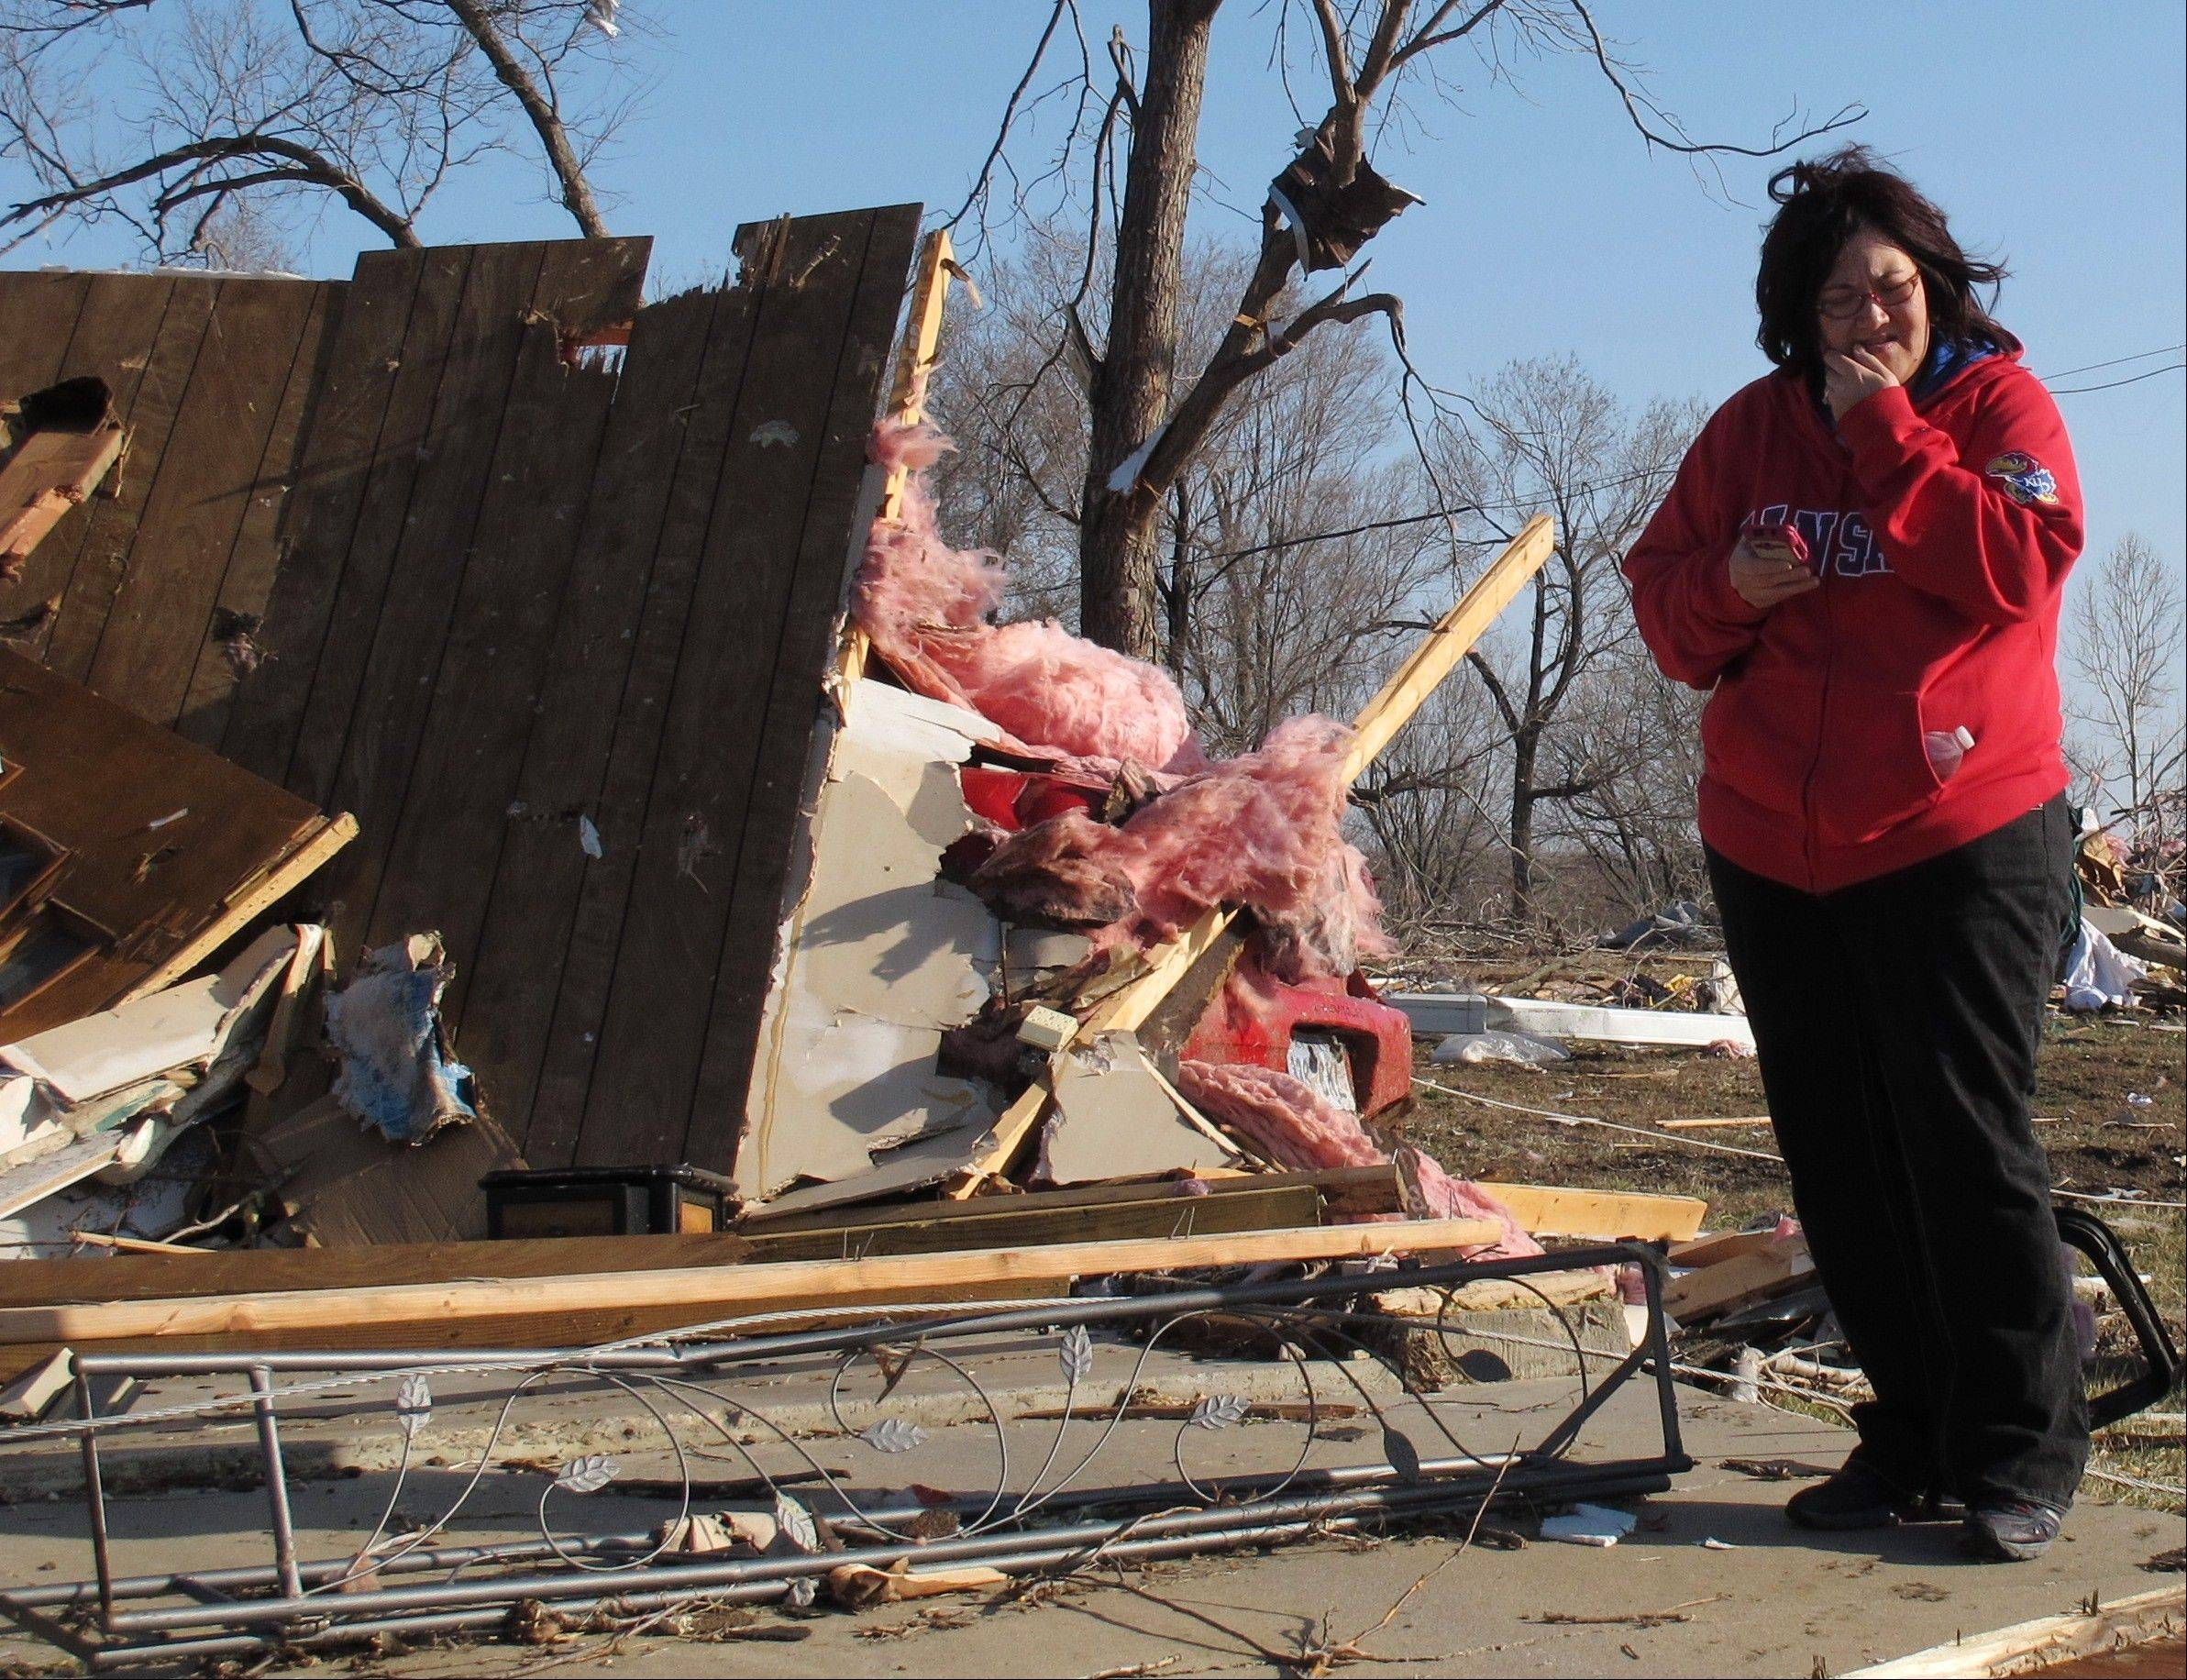 Tammy Woodyard, of Harveyville, surveys the wreckage of her father's home the morning after a tornado hit the town, Wednesday, Feb. 29, 2012, in Harveyville, Kan. Her father was unhurt.